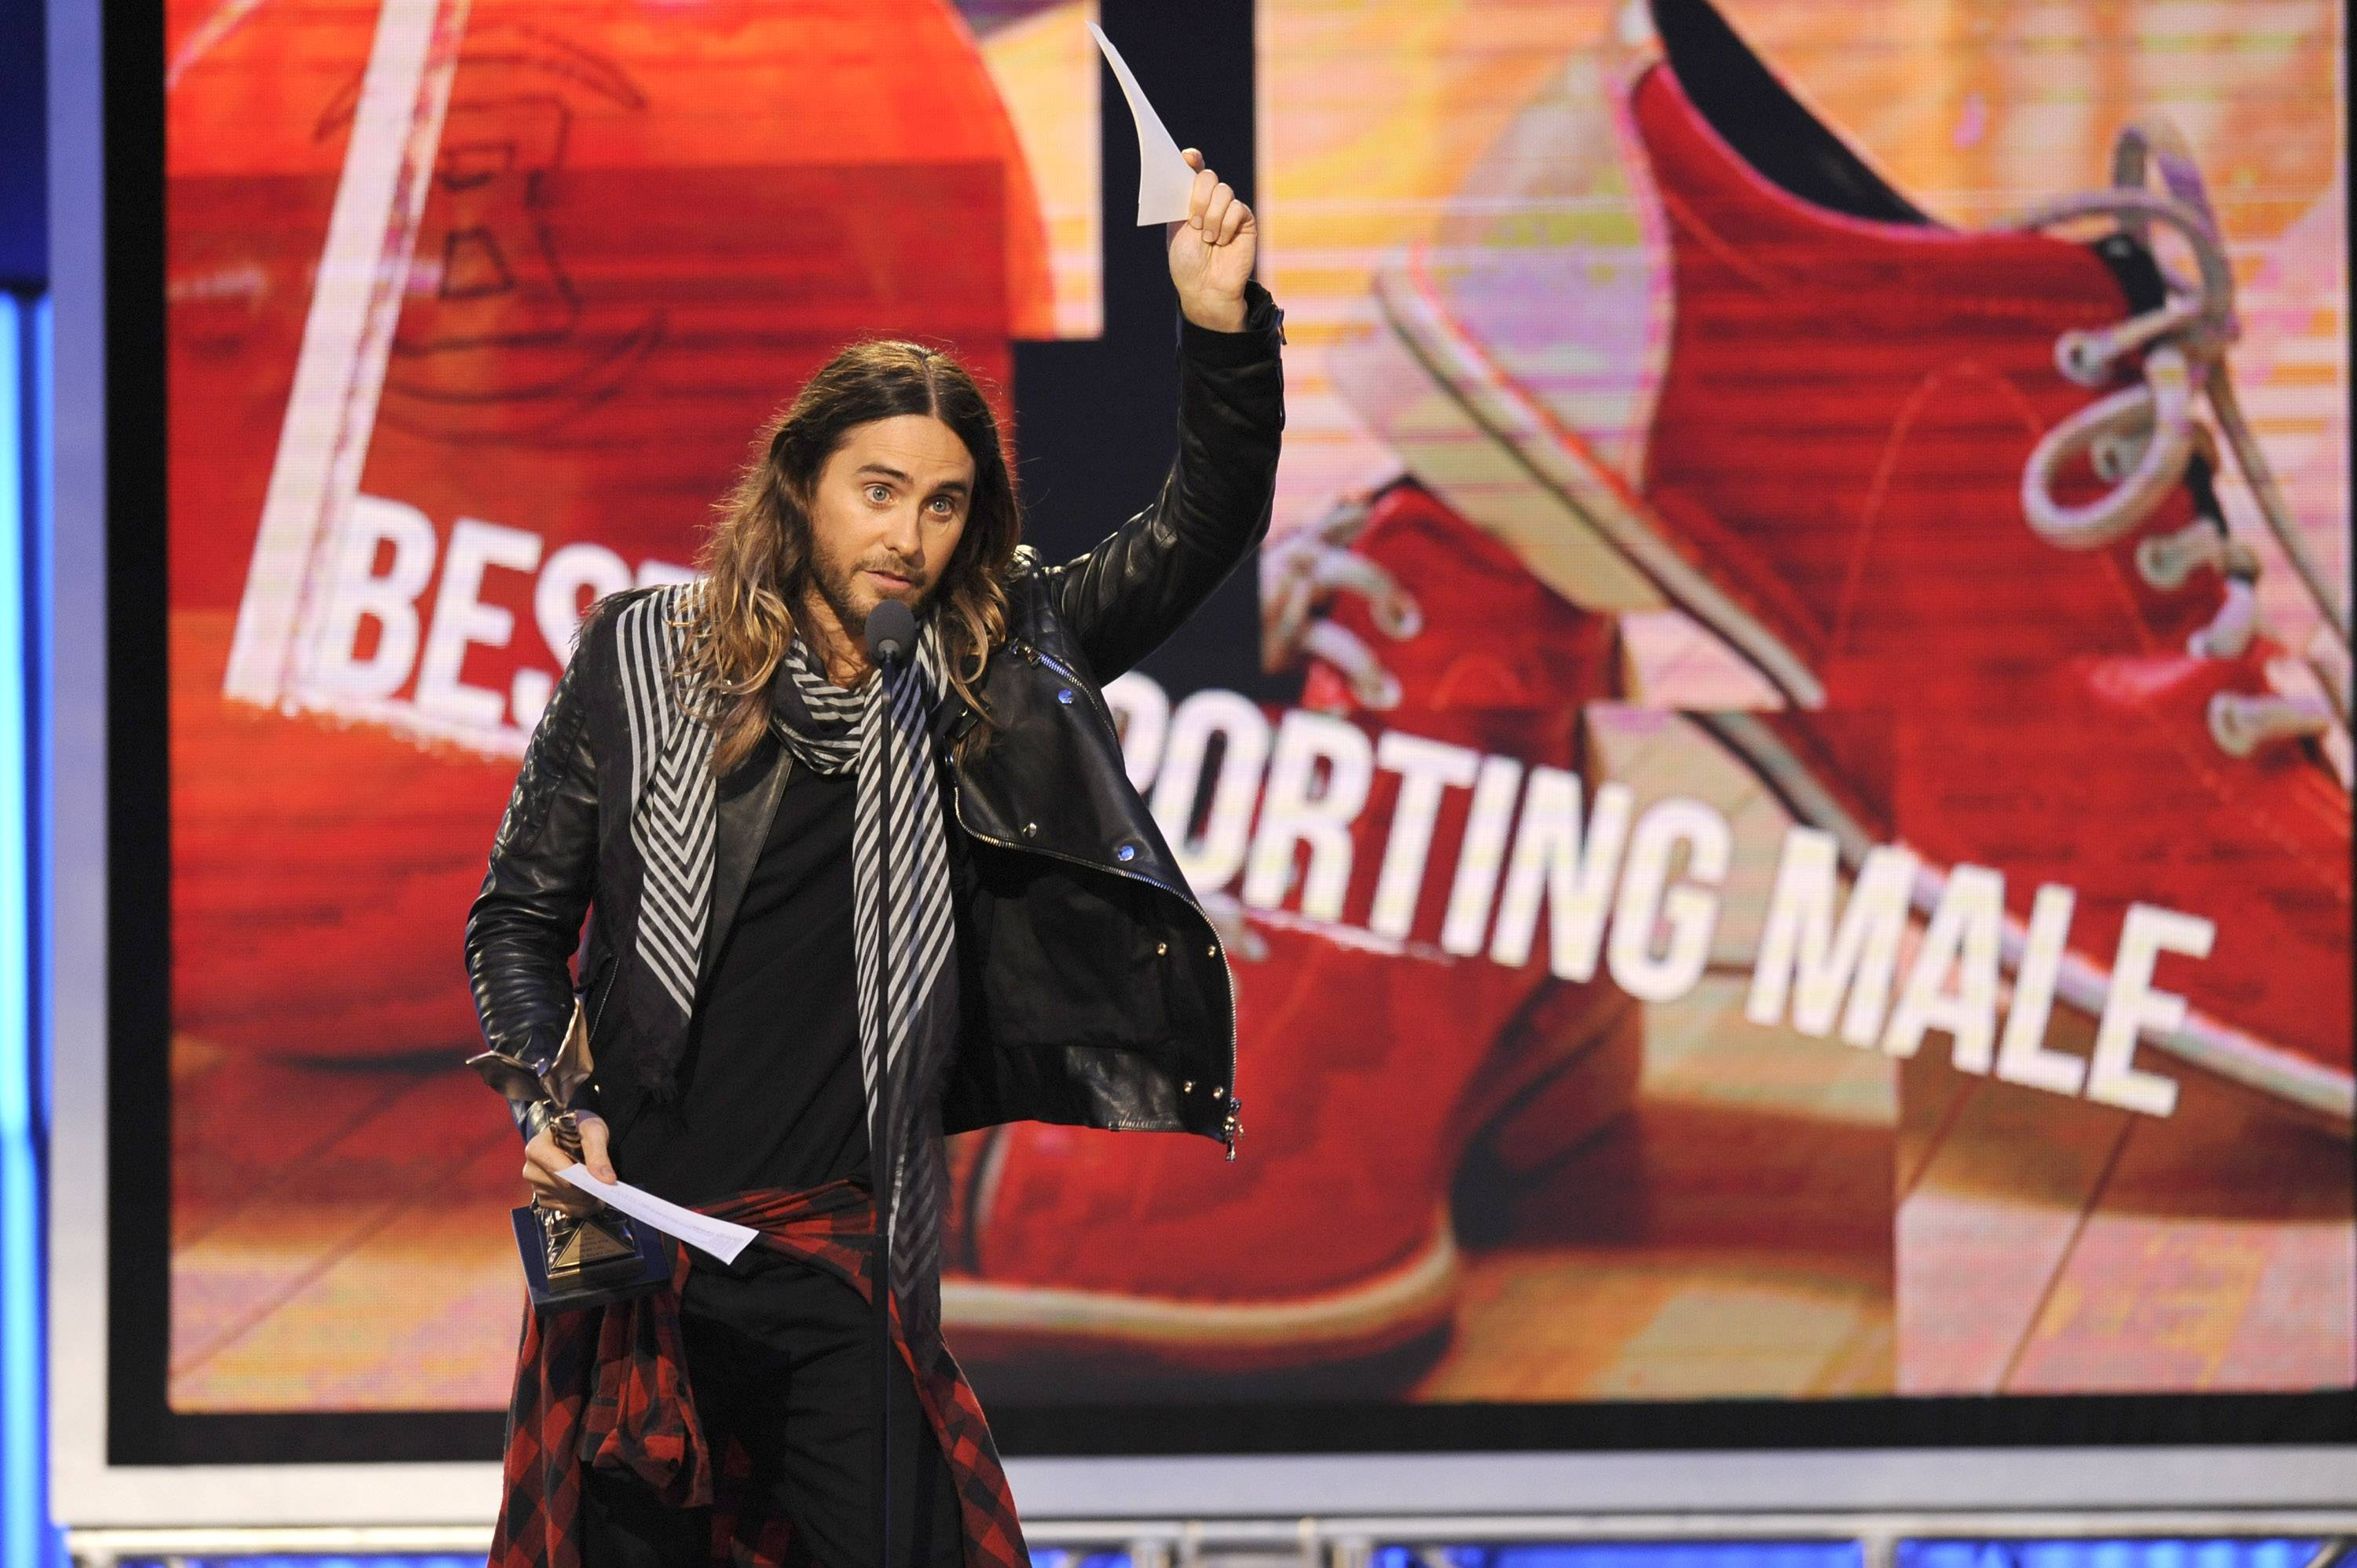 Jared Leto accepts the award for best supporting male on stage at the 2014 Film Independent Spirit Awards, on Saturday in Santa Monica, Calif.